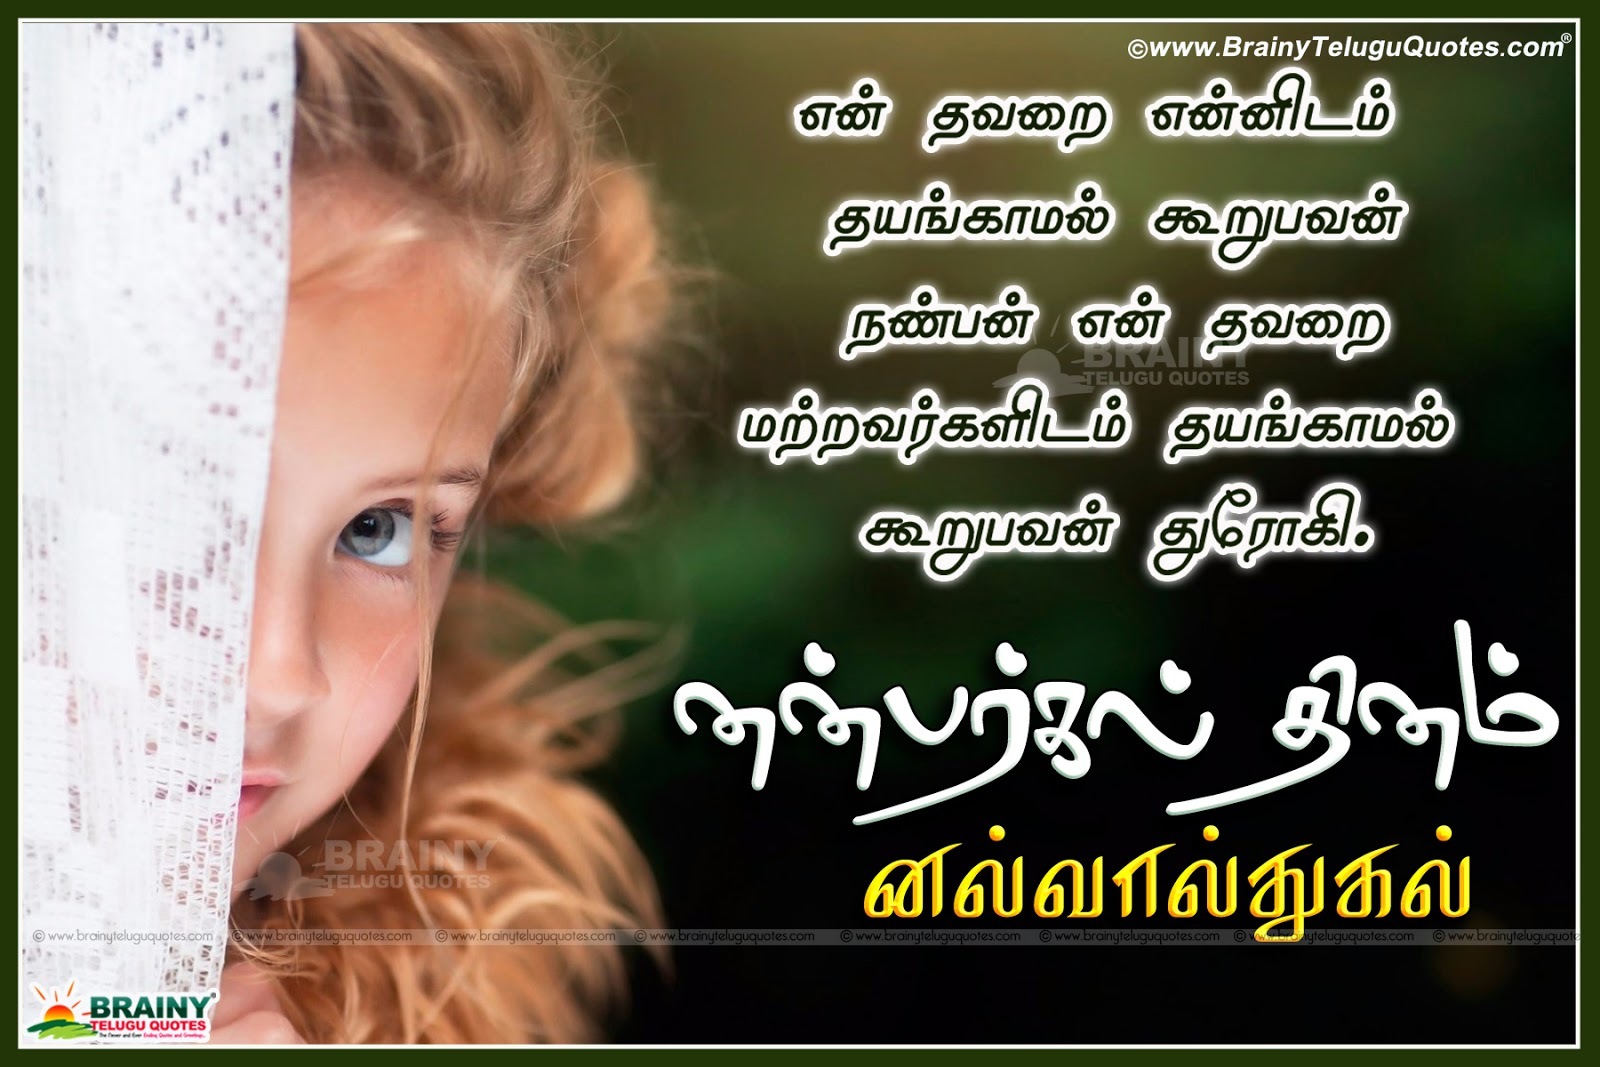 Happy friendship day 2016 wishes greetings and images in tamil happy friendship day 2016 wishes greetings and images in tamil kristyandbryce Image collections